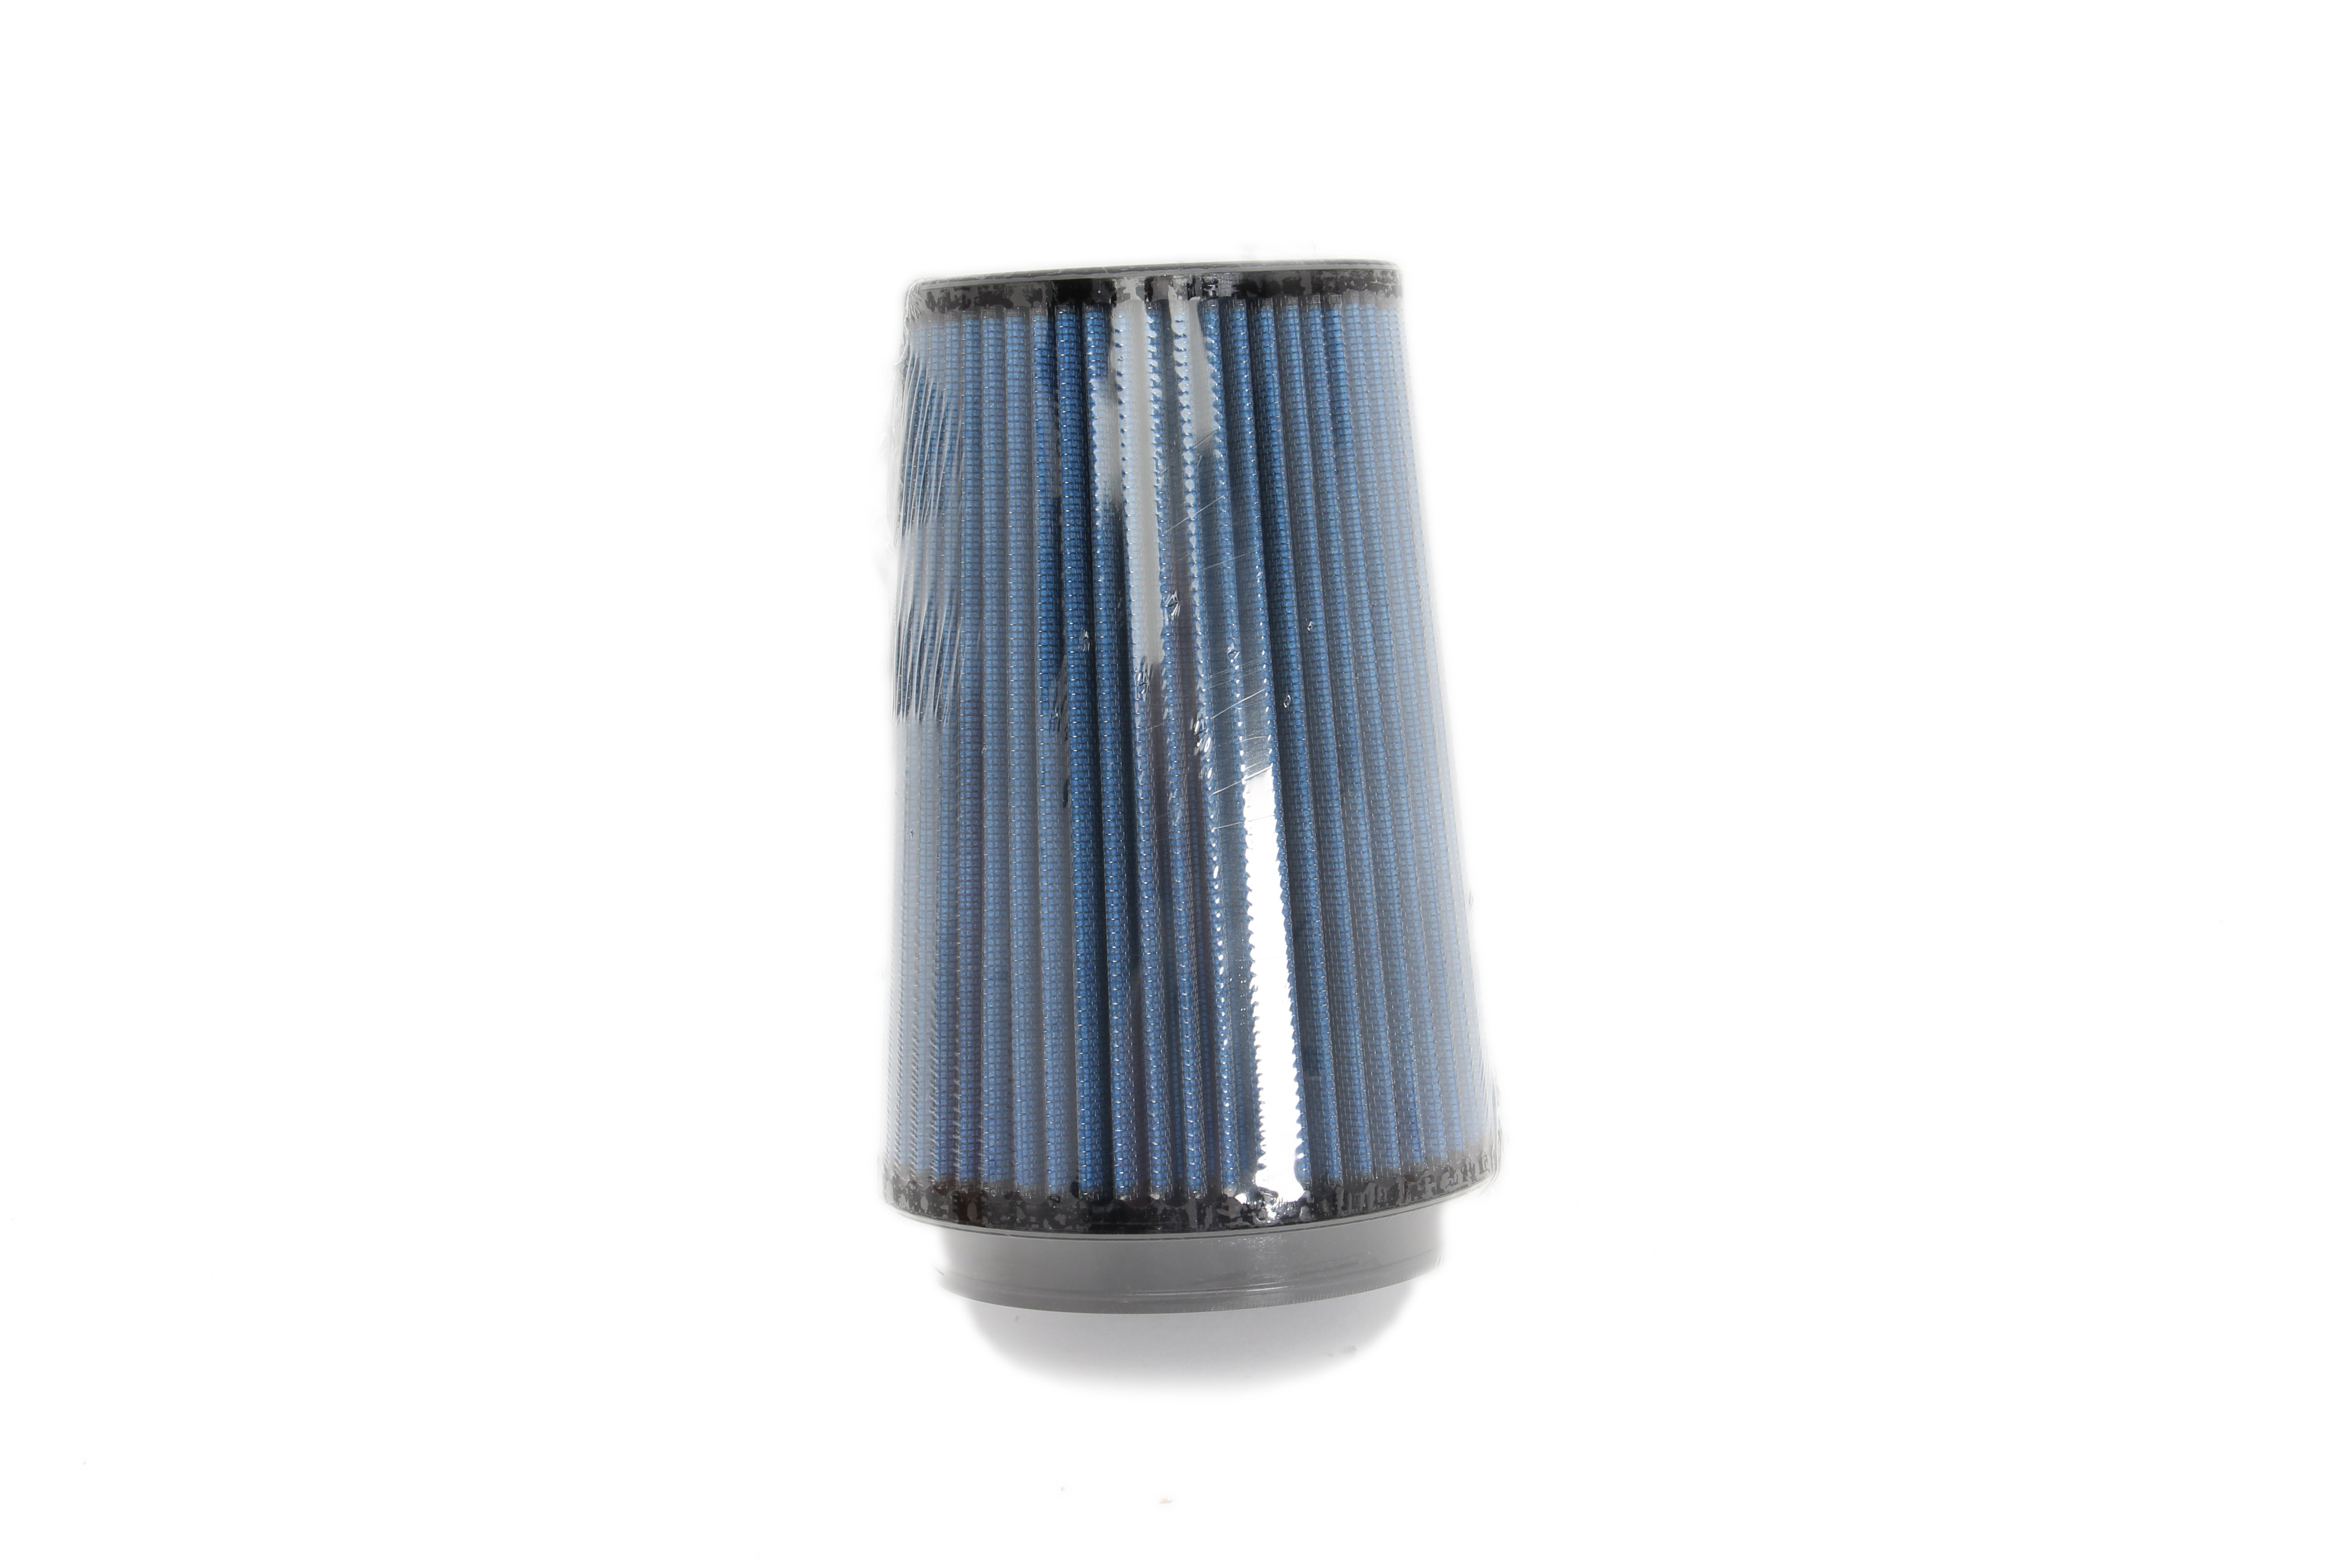 D-0100-VFE Replacement Filter Element for Deltech D-0100-VF.01 Micron Particulate//.003 PPM Oil Vapor Removal